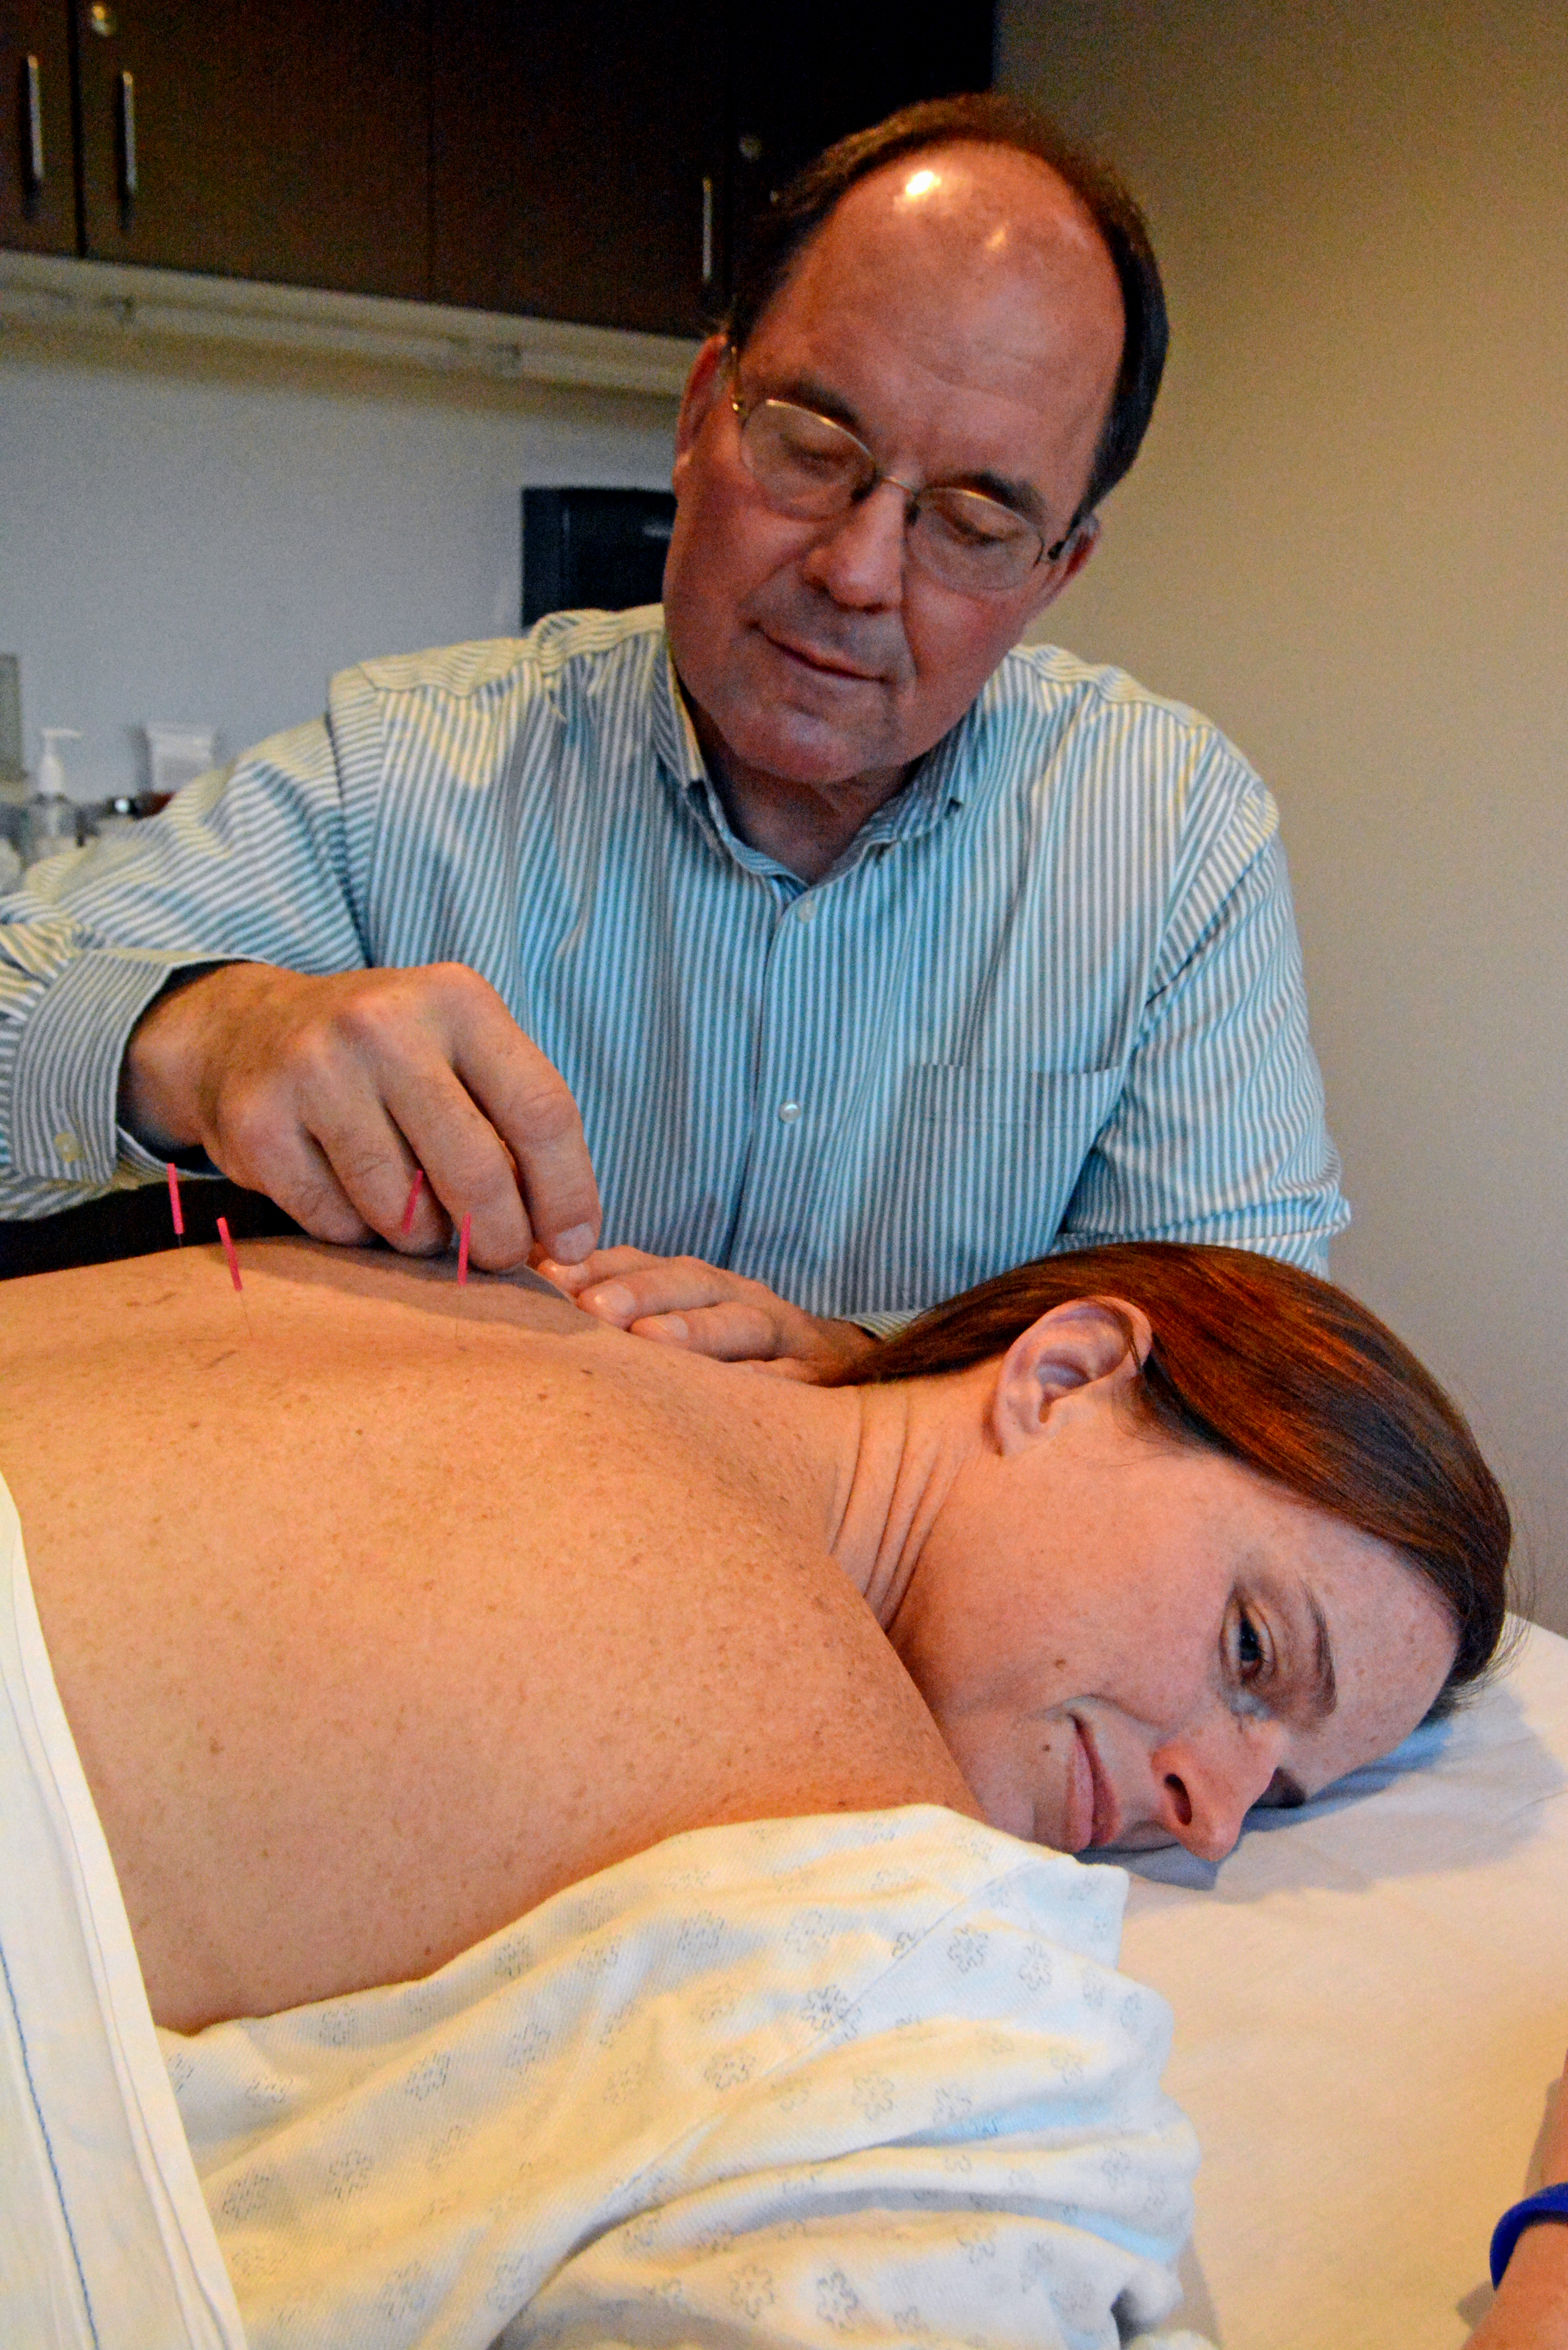 A patient is receiving acupuncture treatment from a Winchester Hospital acupuncturists